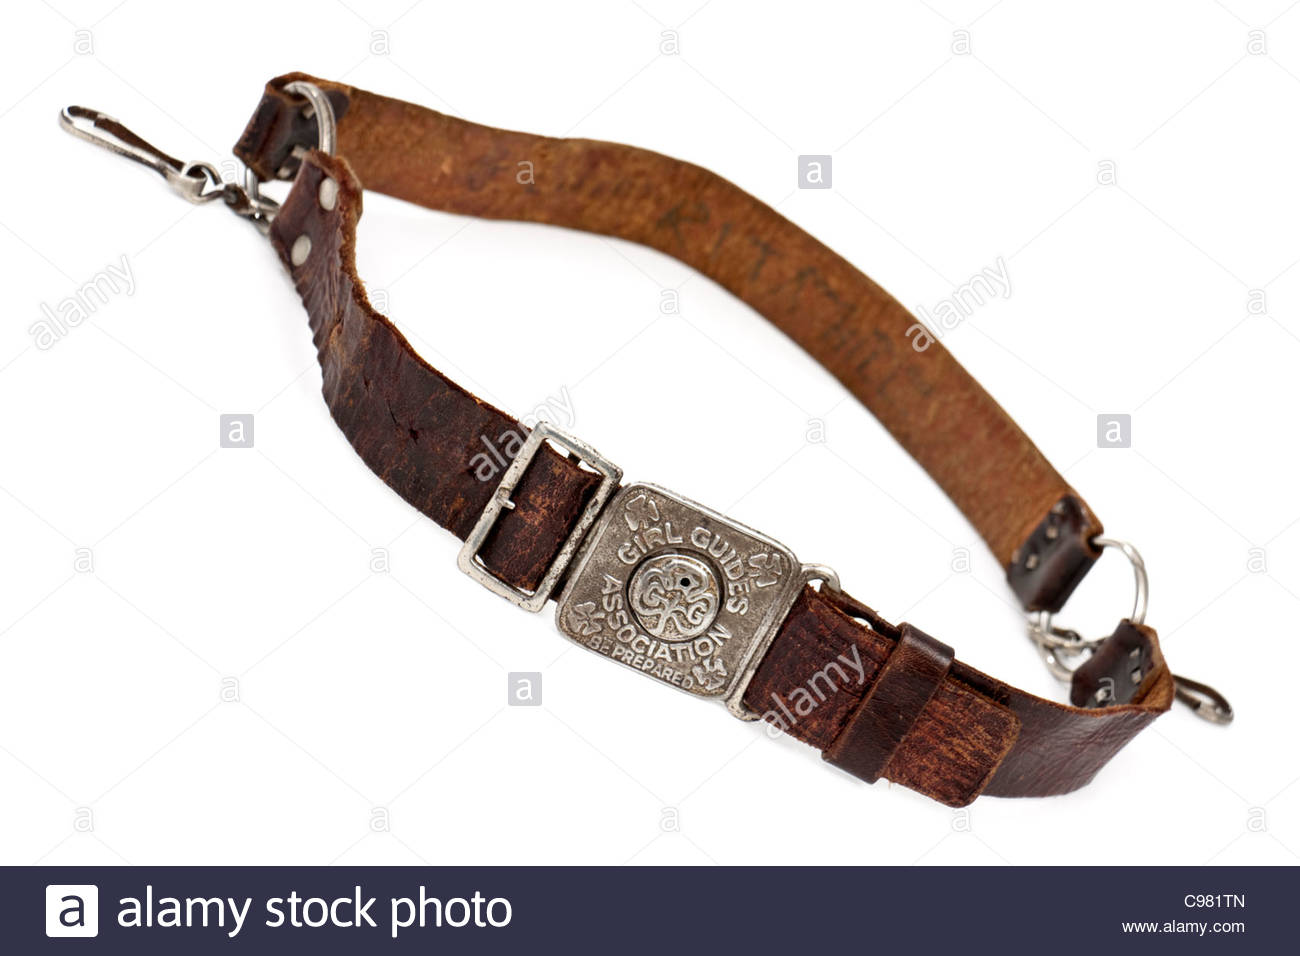 "Vintage Girl Guides Association leather belt with buckle showing their motto ""Be Prepared"" Stock Photo"